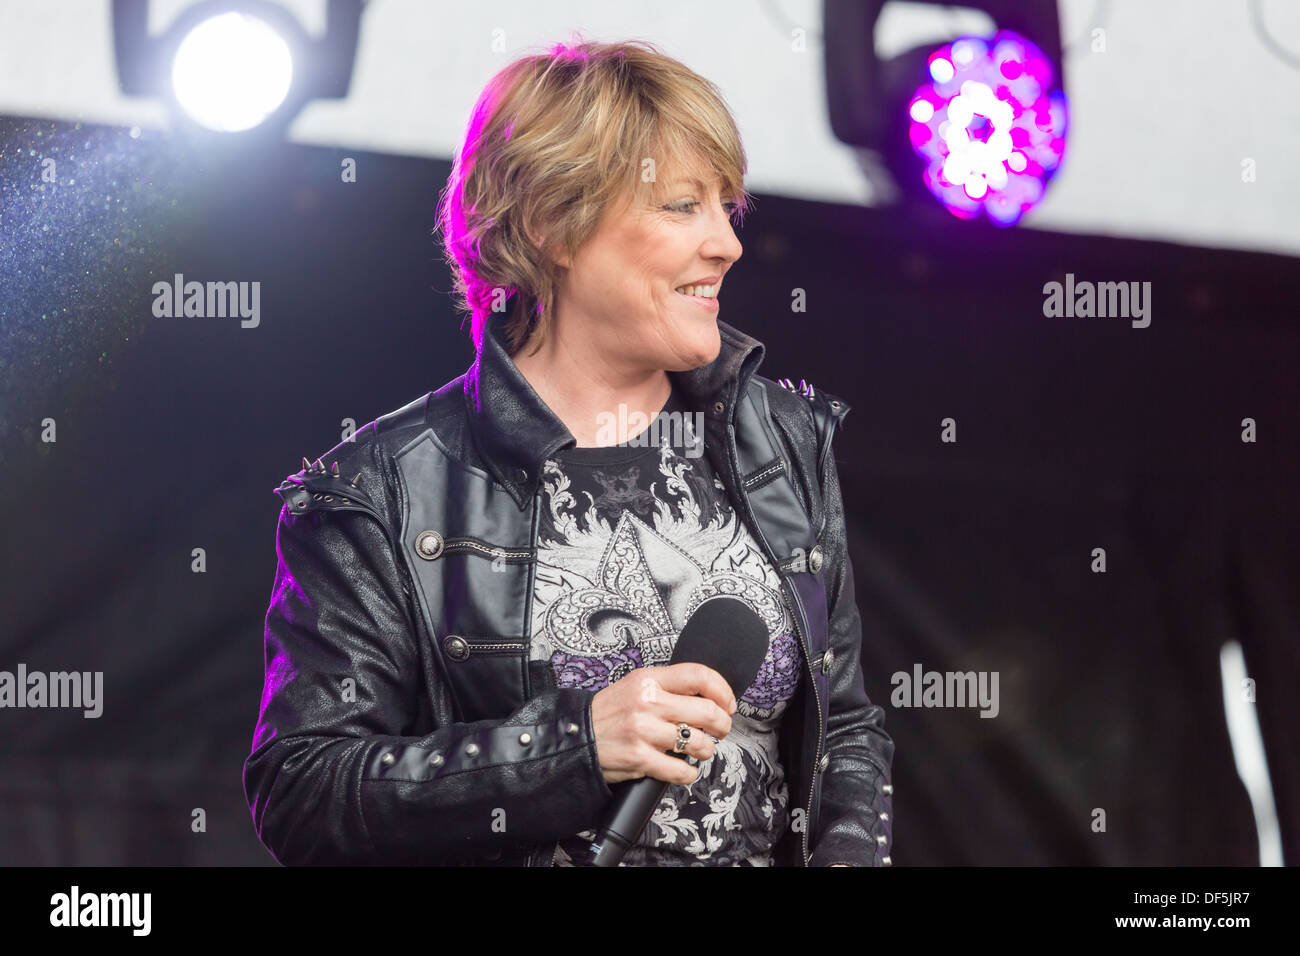 Katrina Leskanich performing at the Newcastle Pride event, July 2013 at Newcastle Upon Tyne - Stock Image